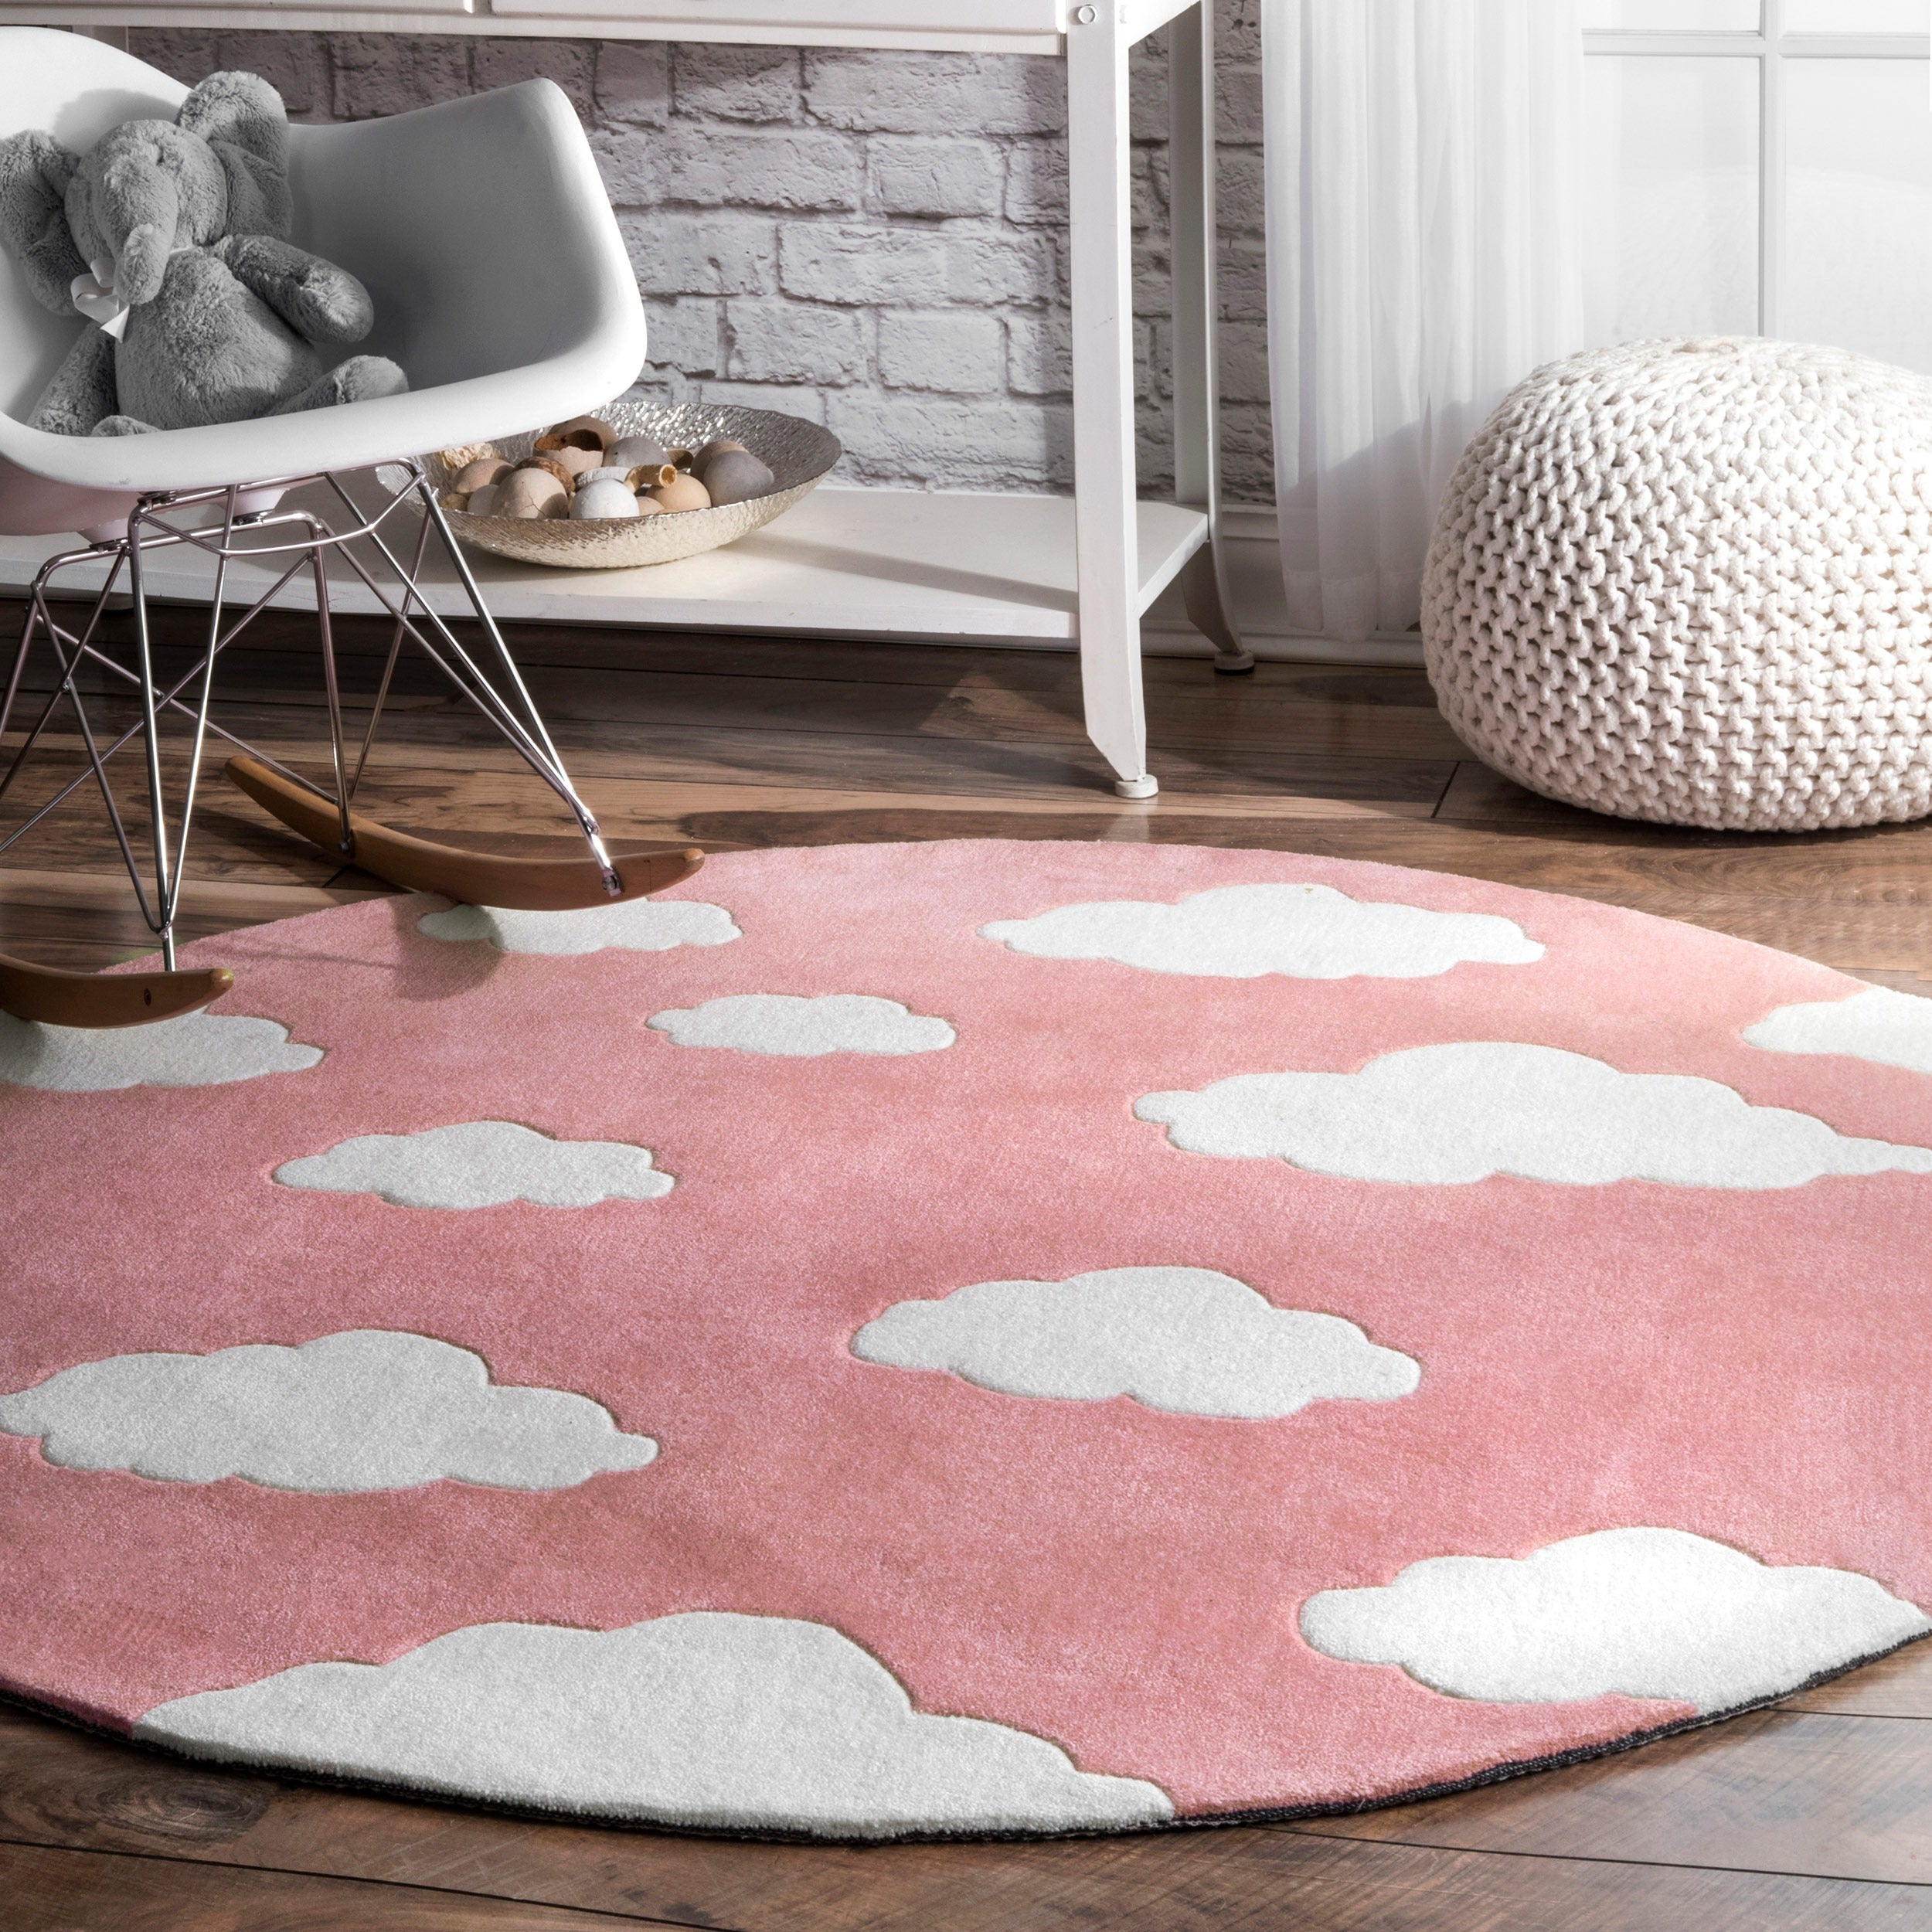 for round docomomoga pink best your suitable planning rug pick the rugs white youngster pertaining way to nursery